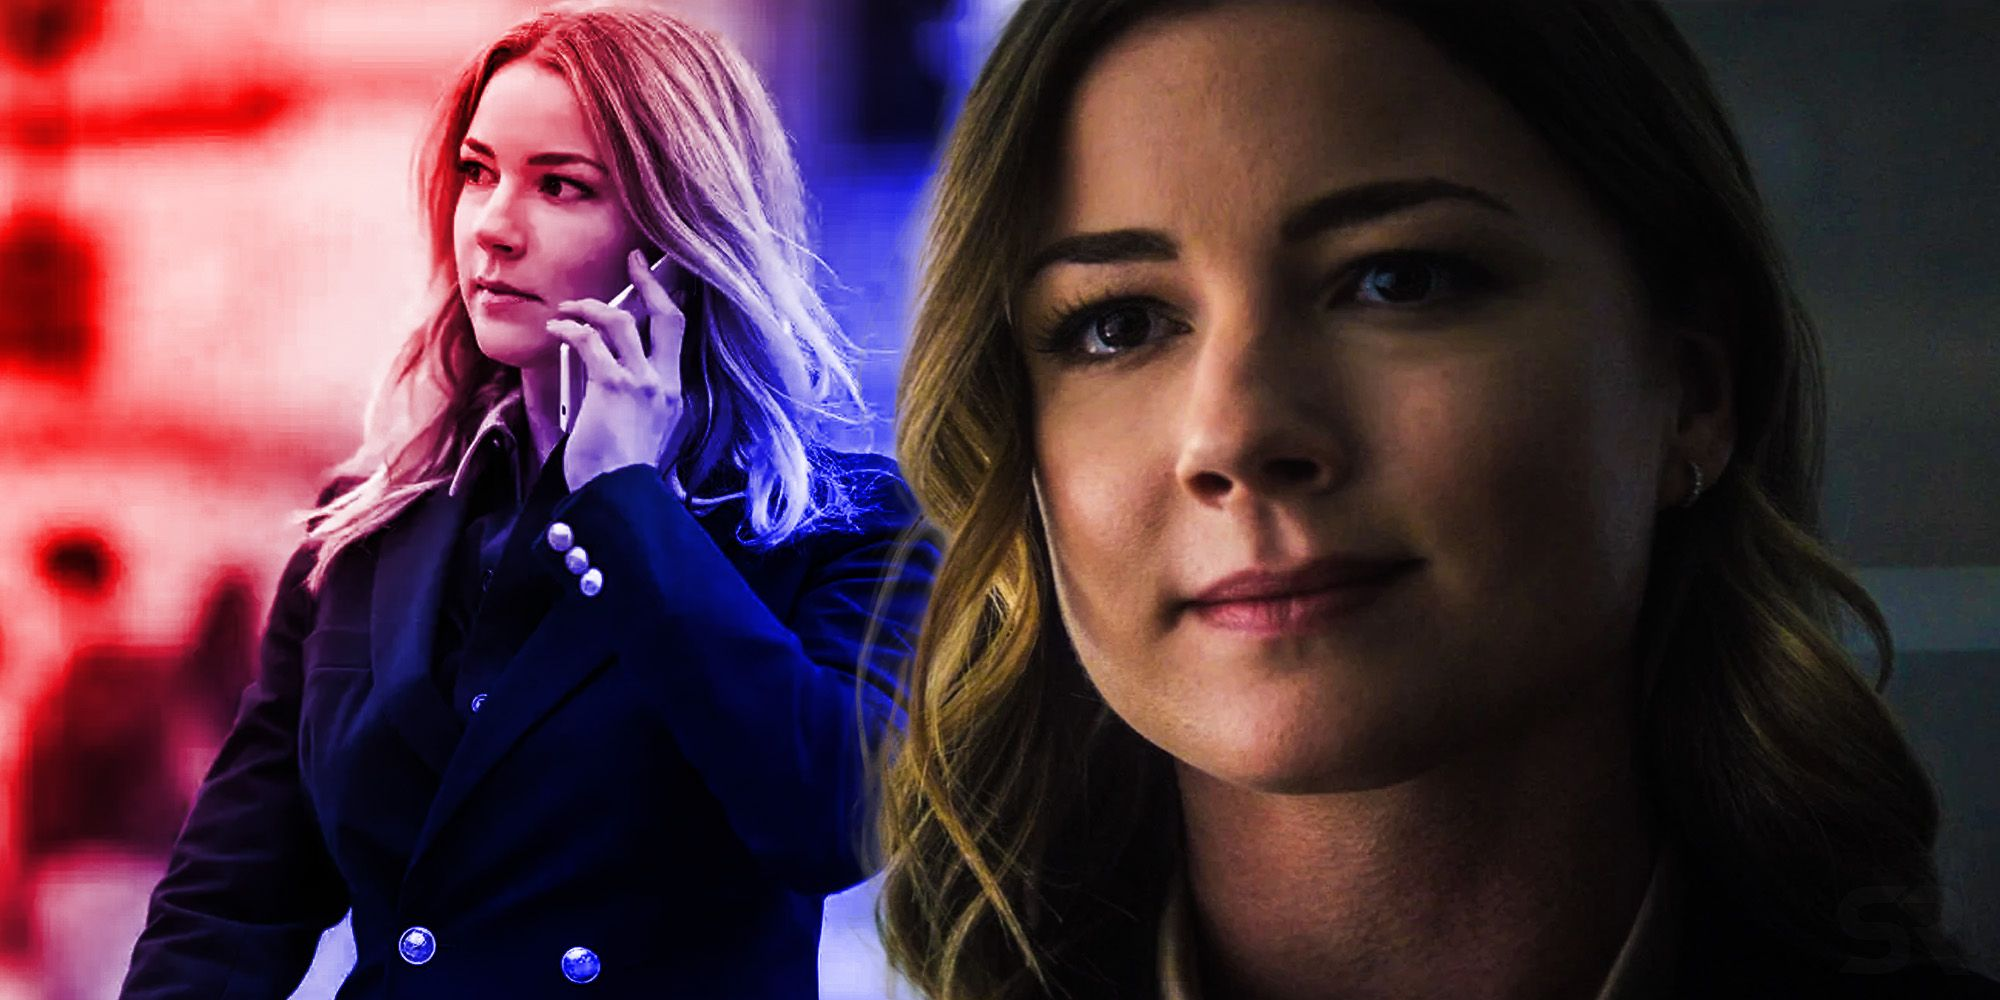 Why Sharon Carter Became The Power Broker (& What She Wants Now)